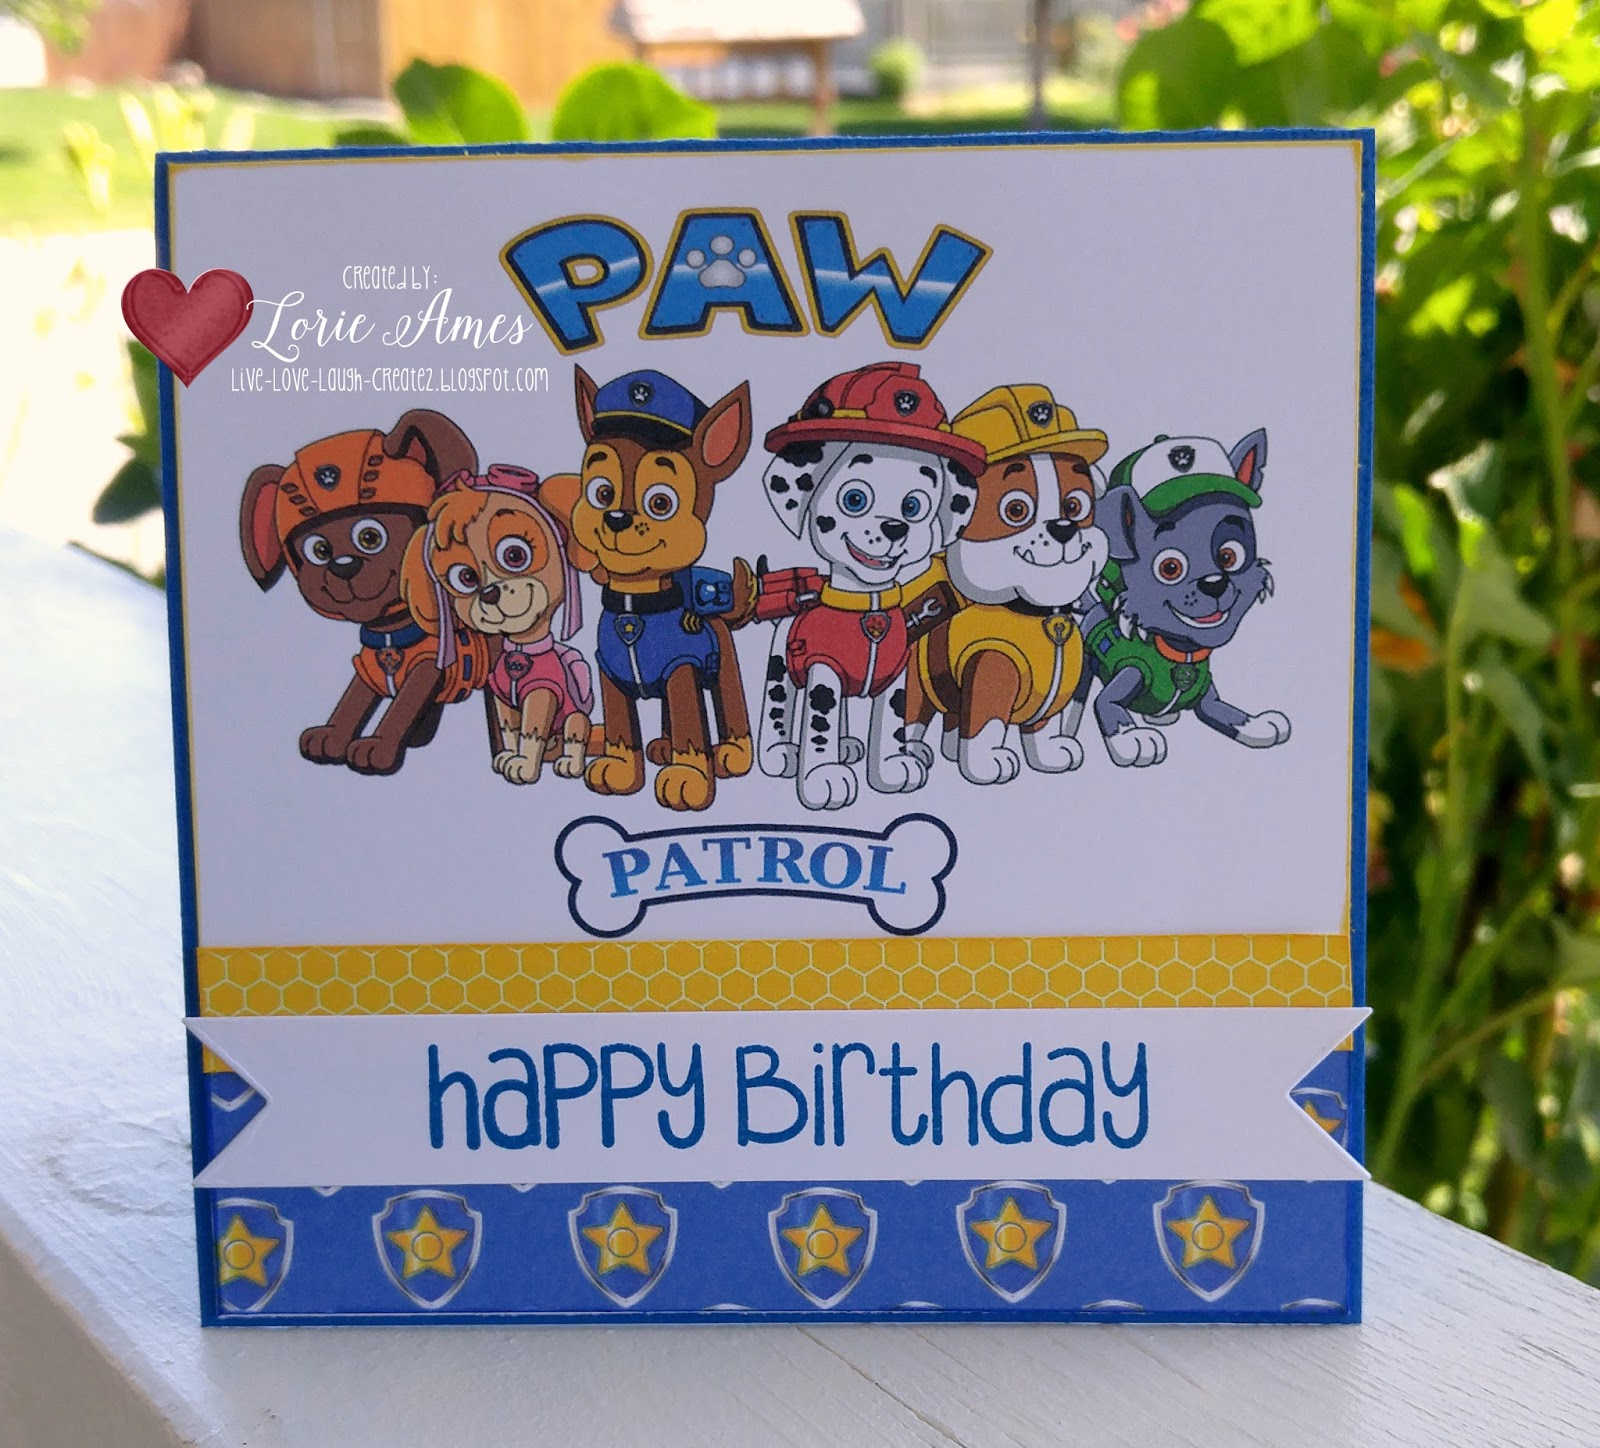 Our Grandson Loves Paw Patrol So Of Course This Nana Had To Make The Card And Decorations Not Only With But Also His Favorite PP Characters